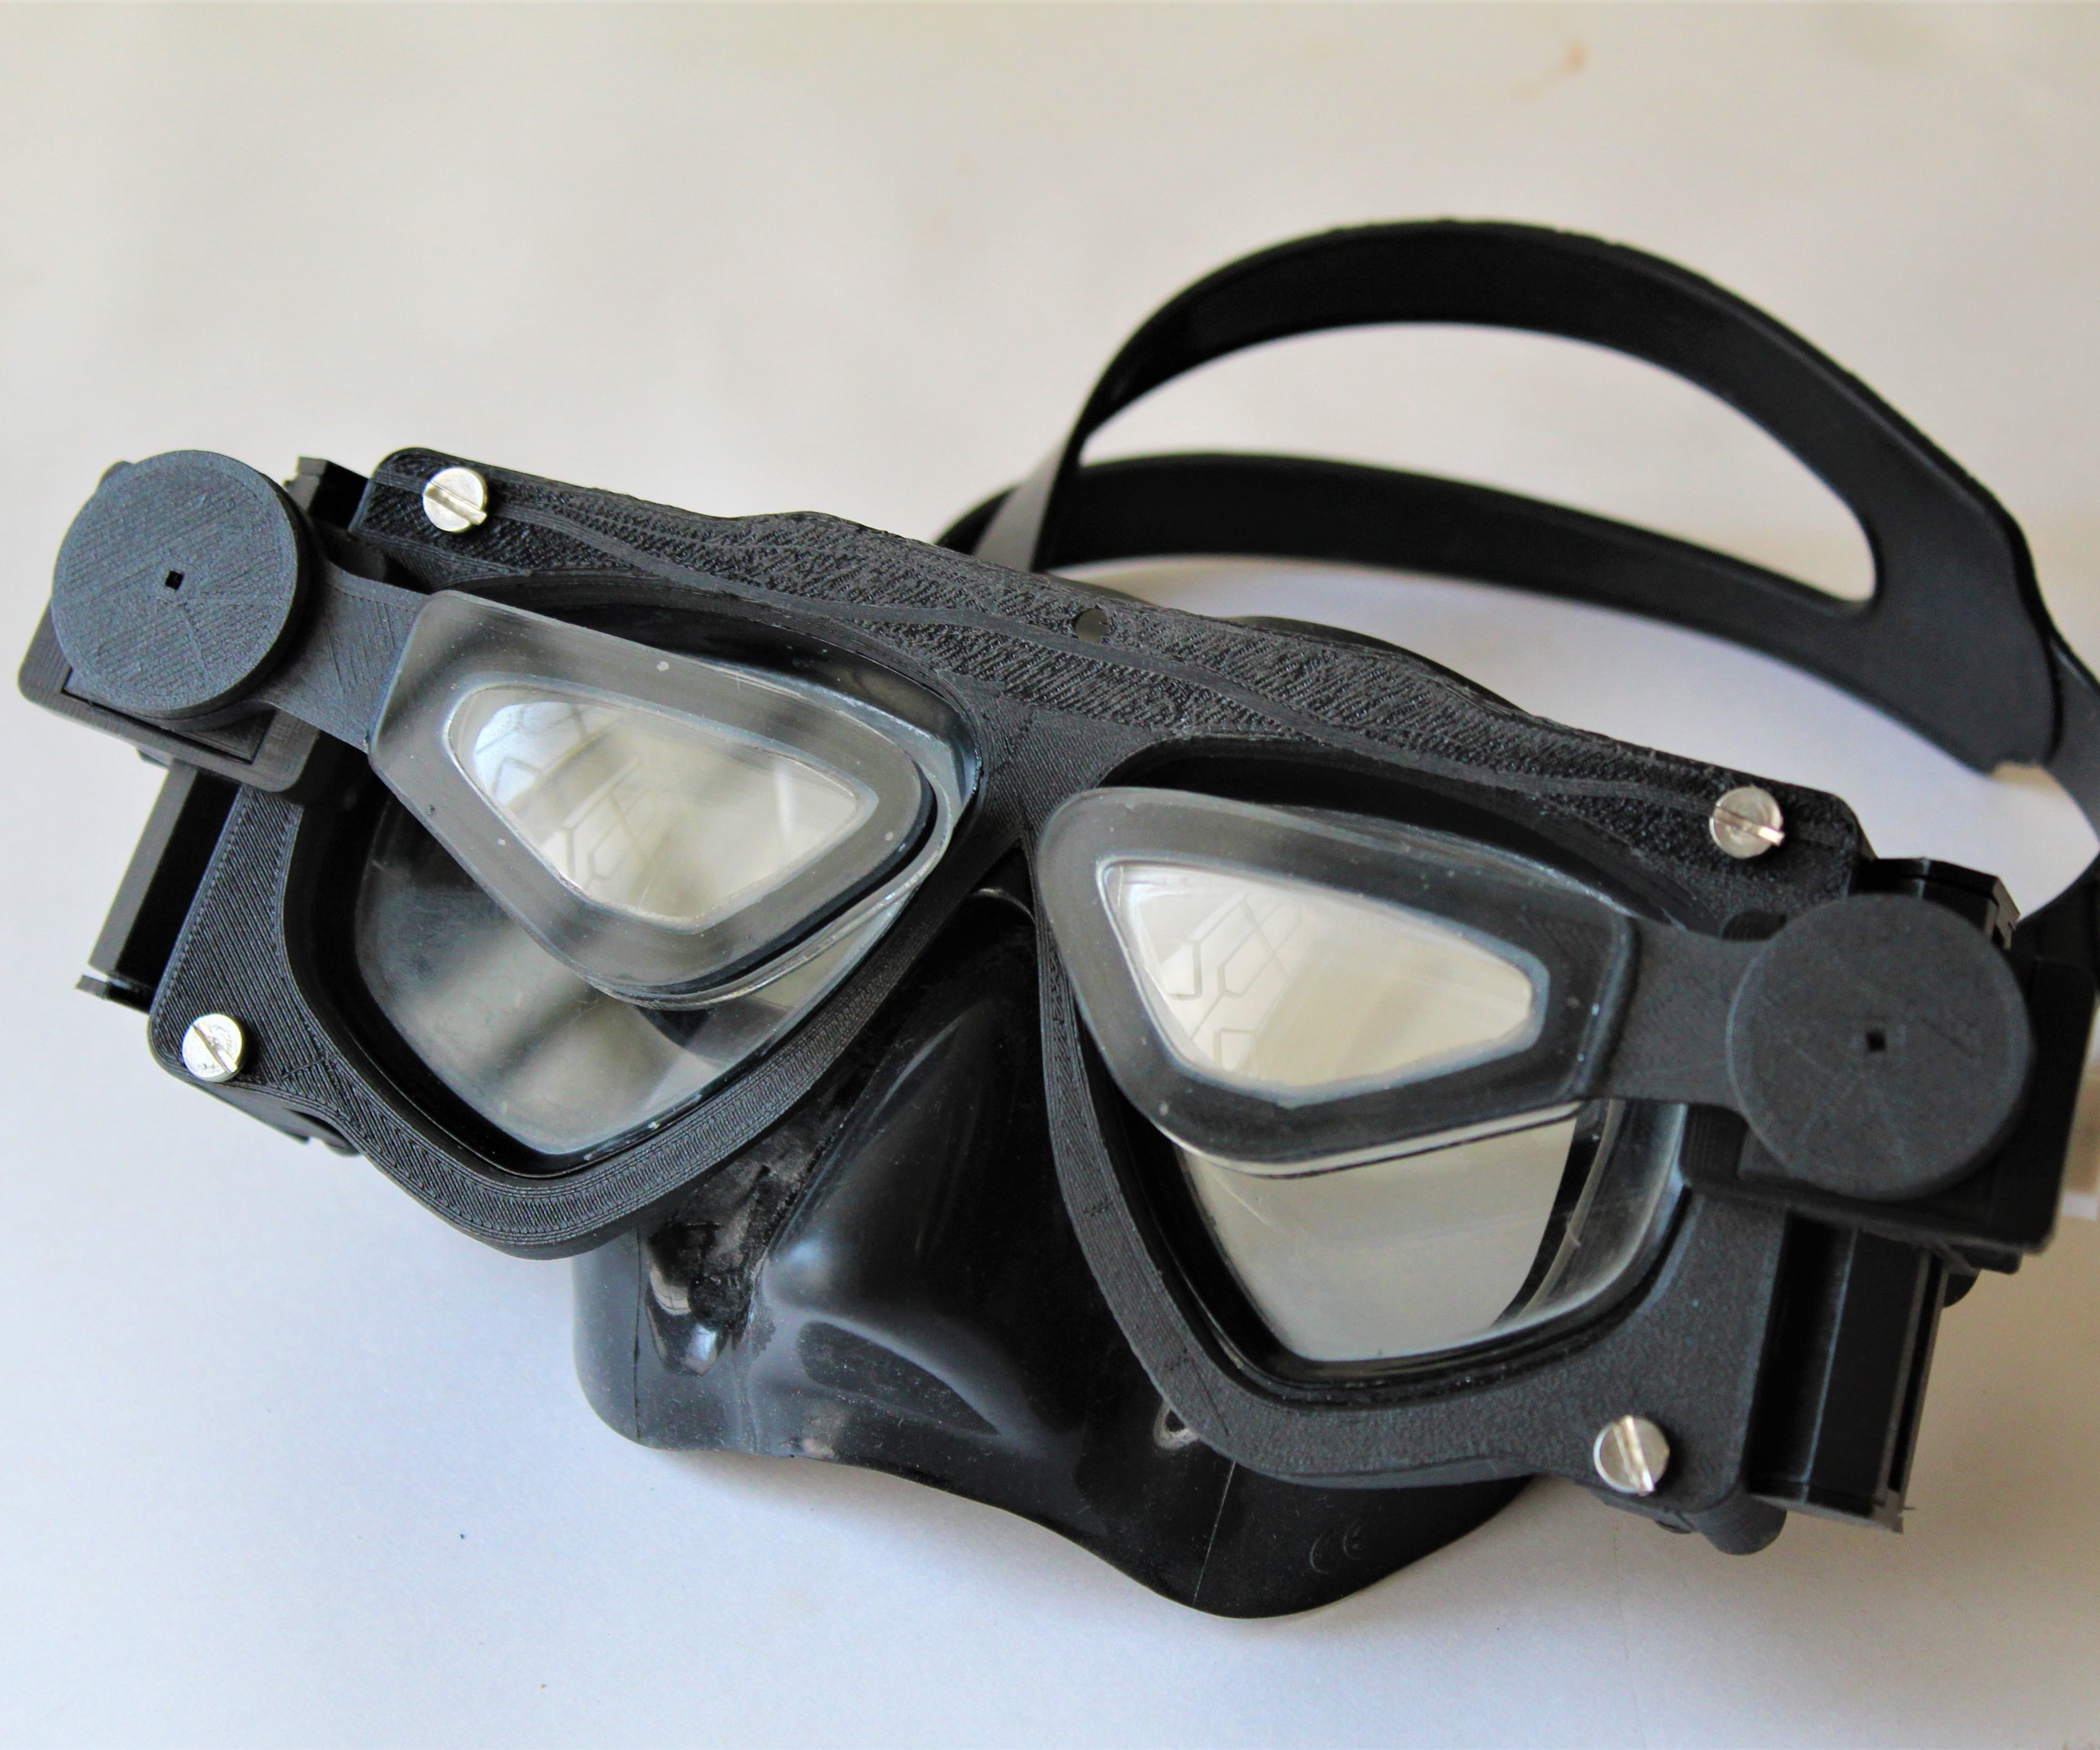 Diving Mask With Custom Add-on Lenses (V2.0) Made Using Photogrammetry